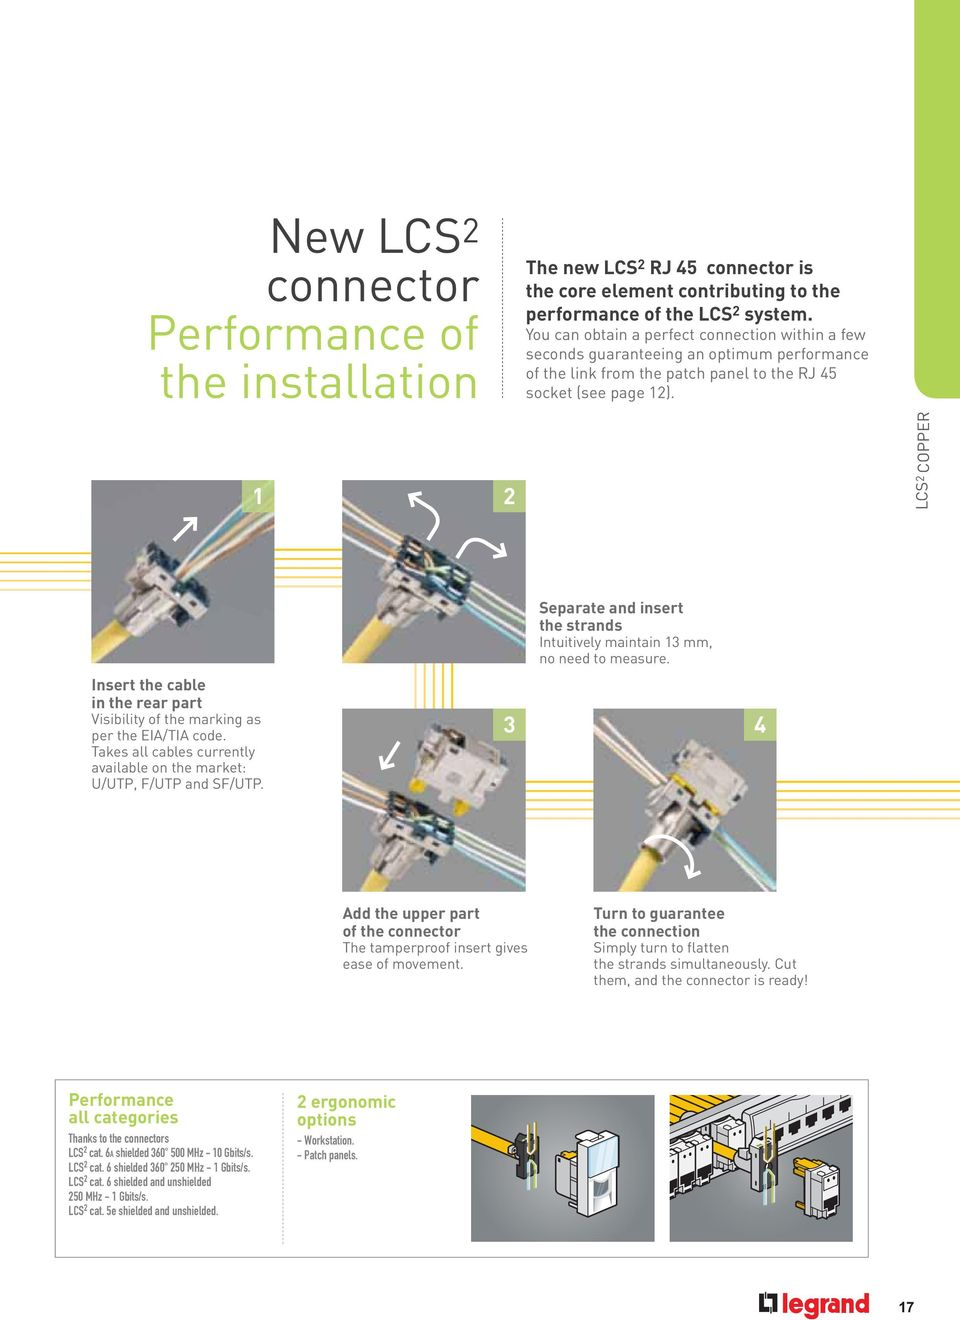 Legrand Cabling System 2 Performance From Technical Room To 19 Patch Panel Wiring Diagram Panels 17 Lcs Copper Insert The Cable In Rear Part Visibility Of Marking As Per